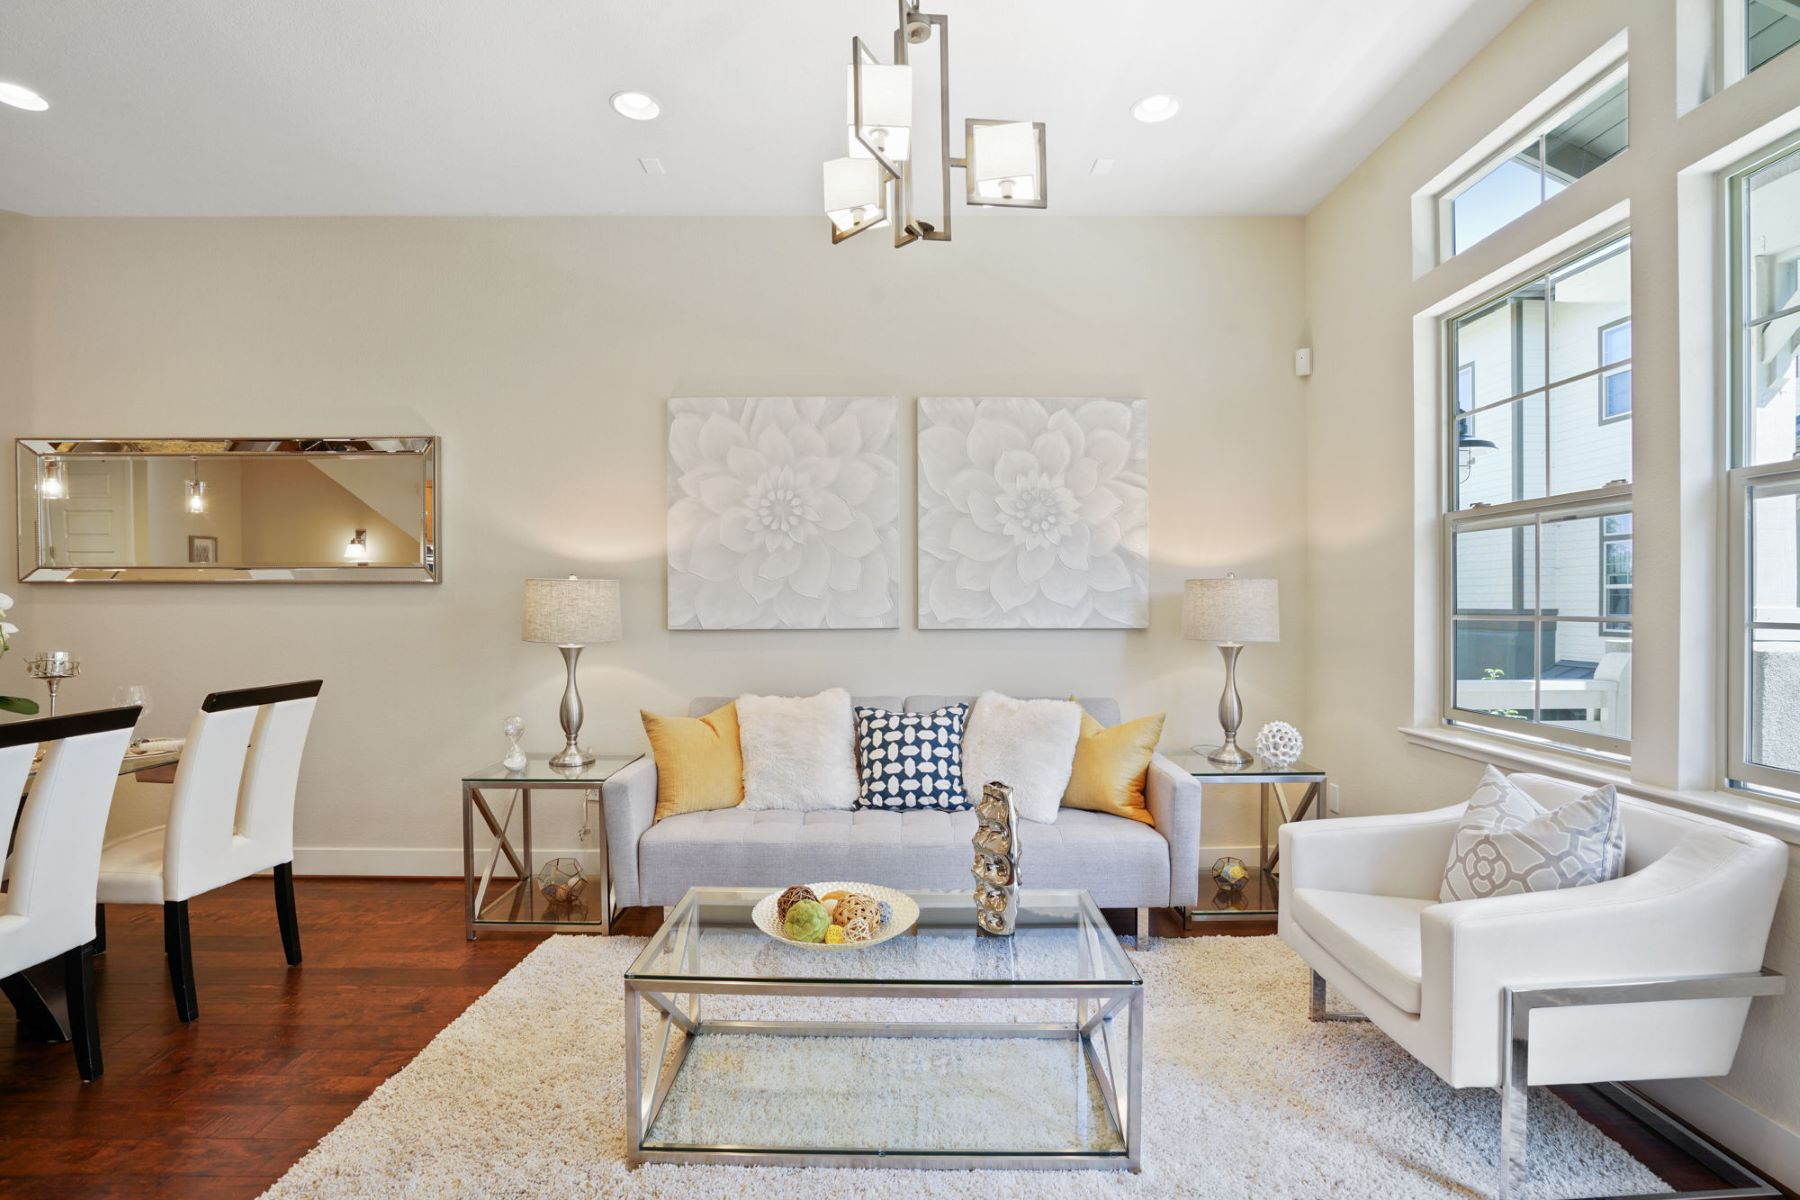 townhouses for Active at Stunning Contemporary Townhome 2827 Olivares Lane San Mateo, California 94403 United States